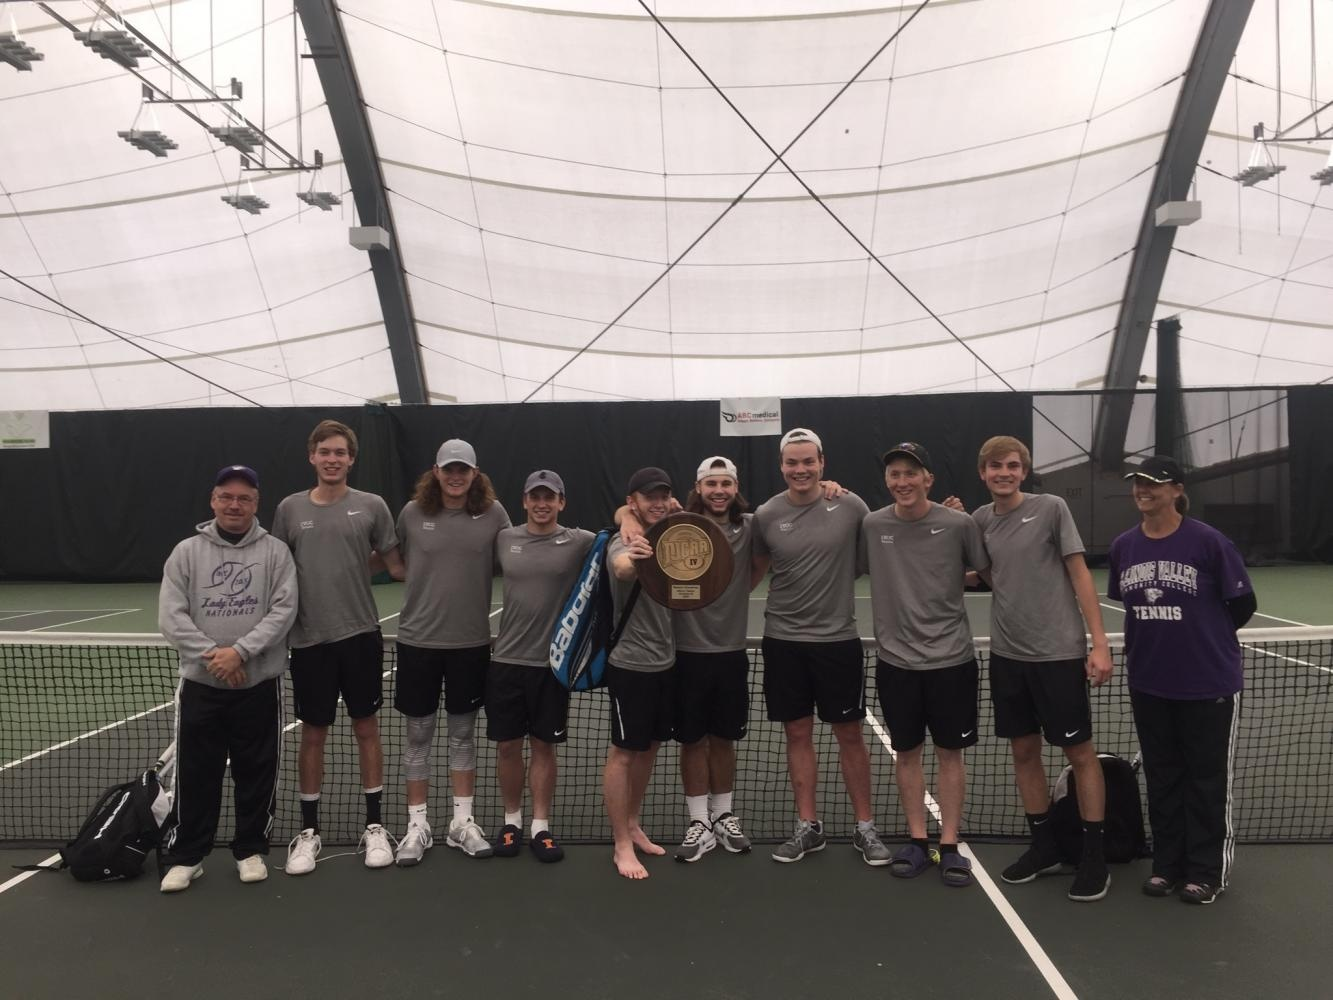 IVCC+Tennis+Team+poses+with+their+hardware+after+a+Regional+victory.